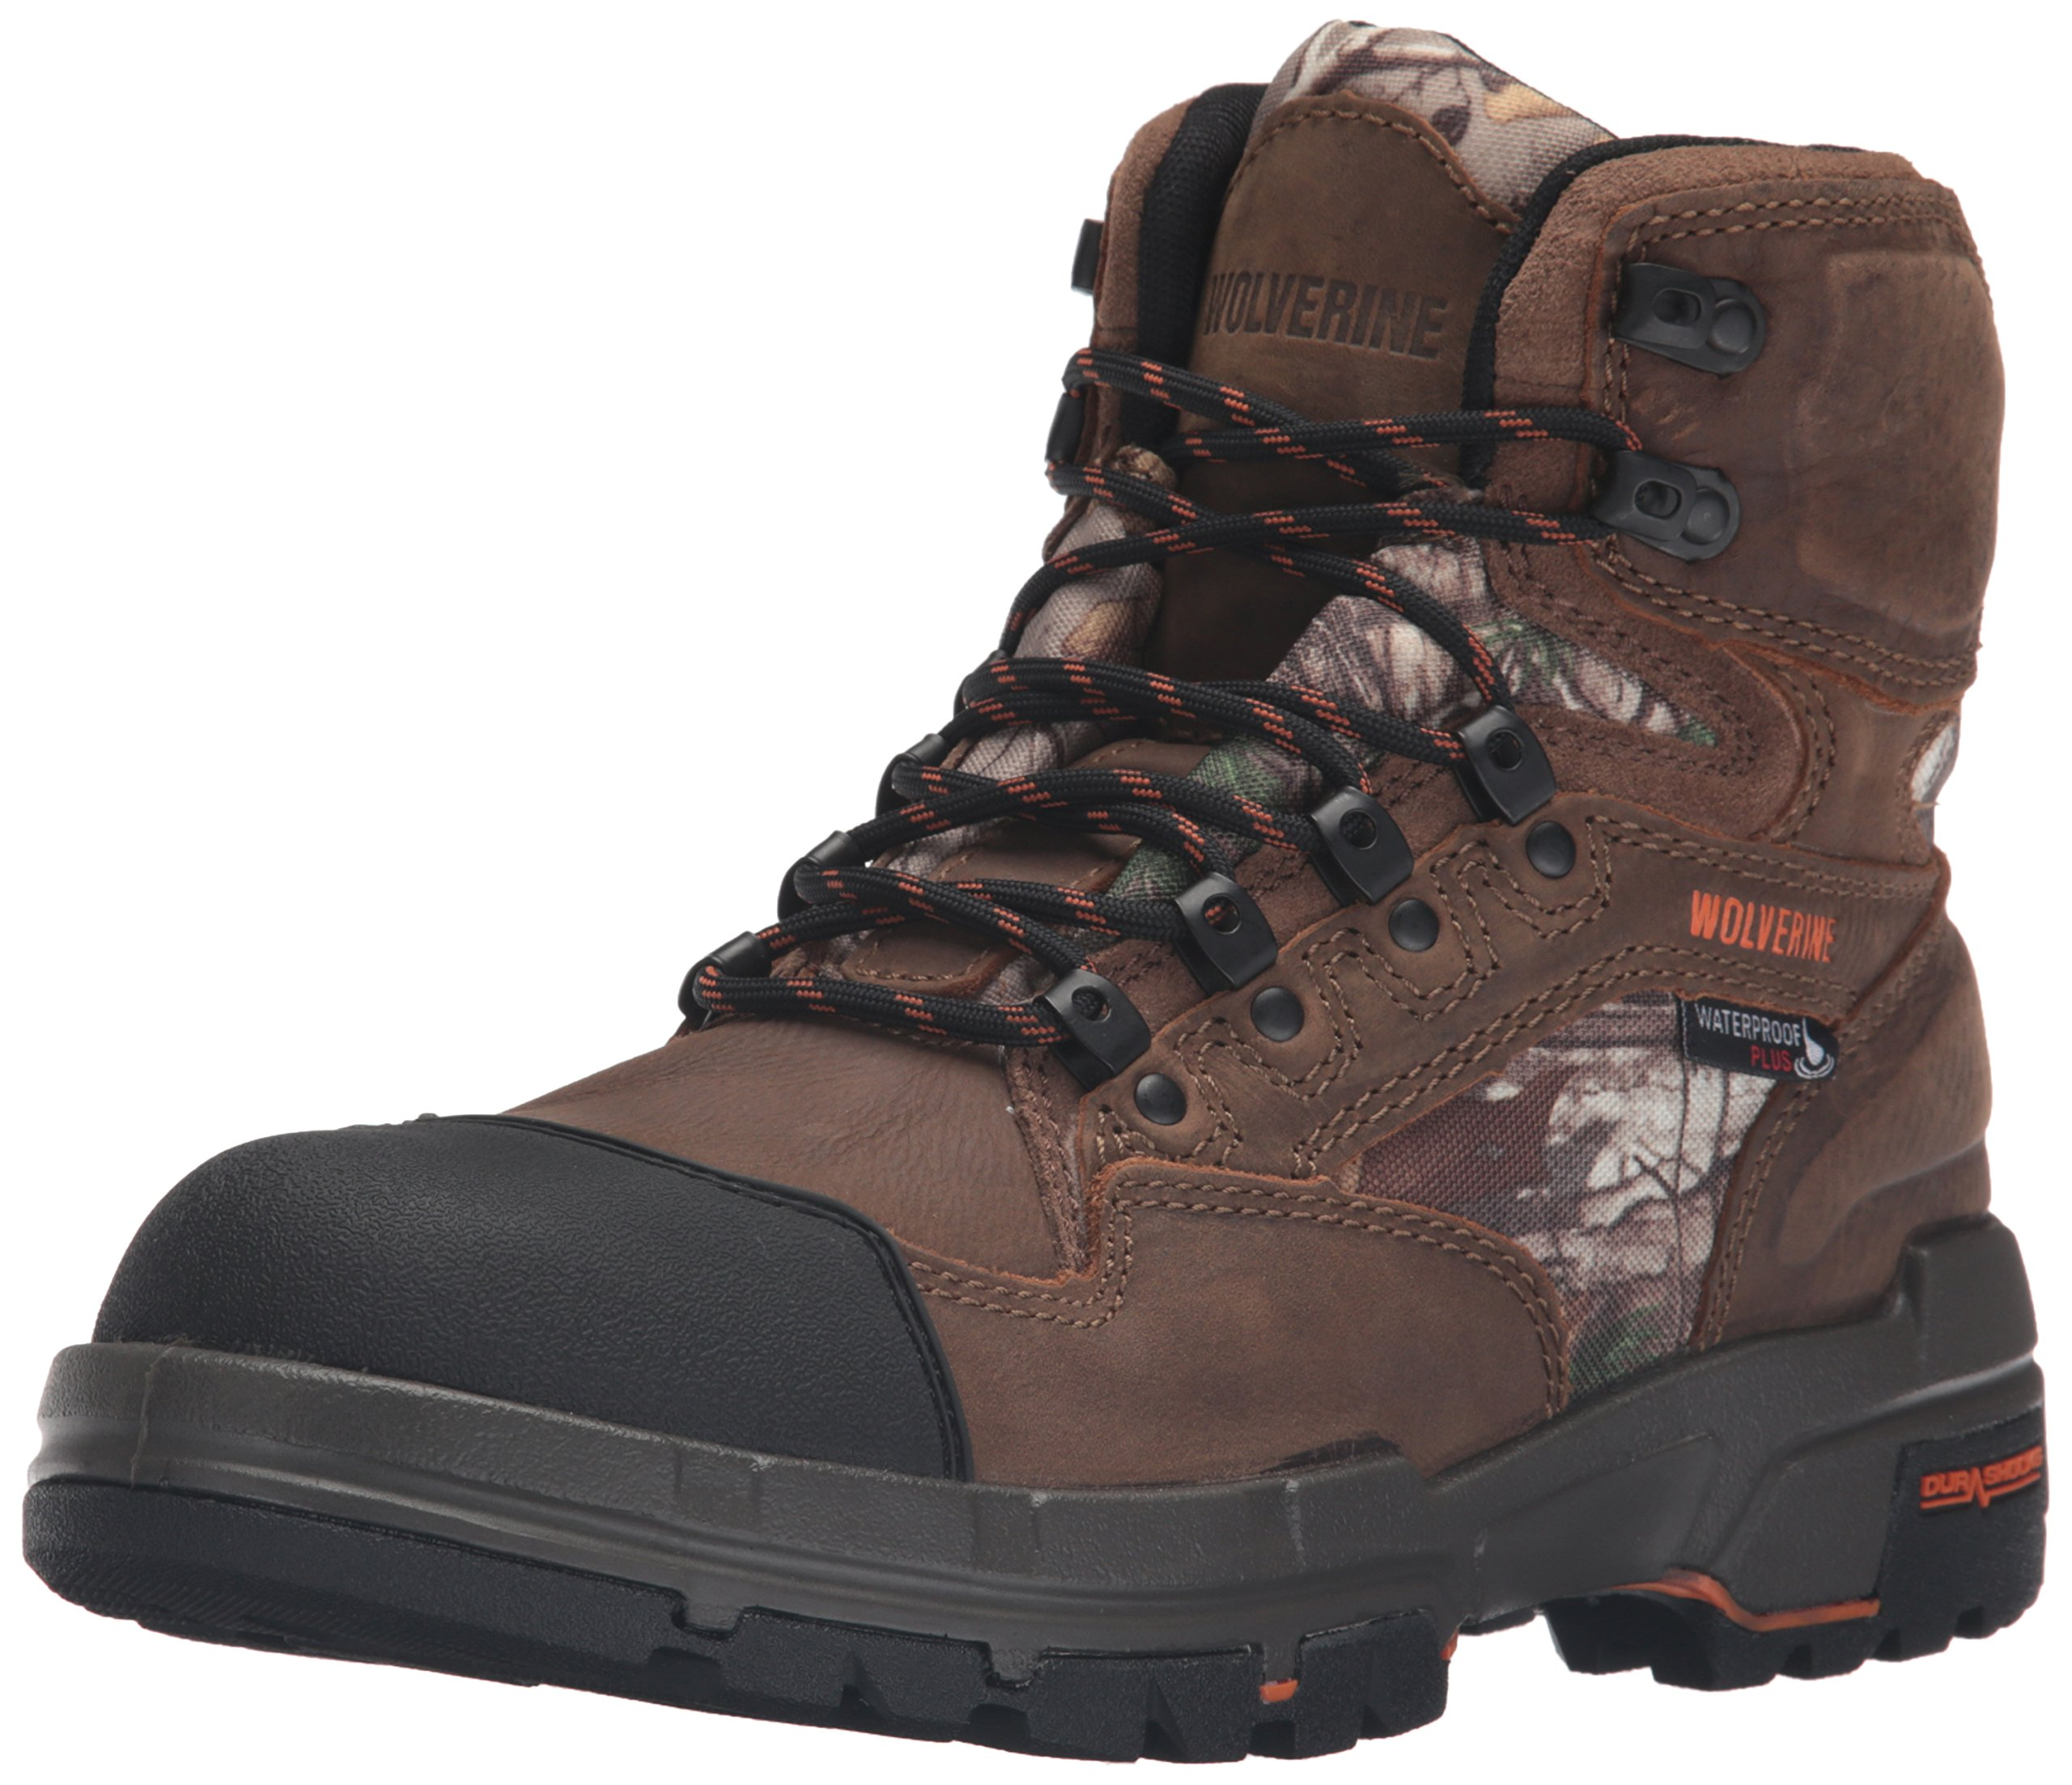 Wolverine Men's Claw Insulated Waterproof-M Hunting Boot, Brown/Realtree, 11 M US